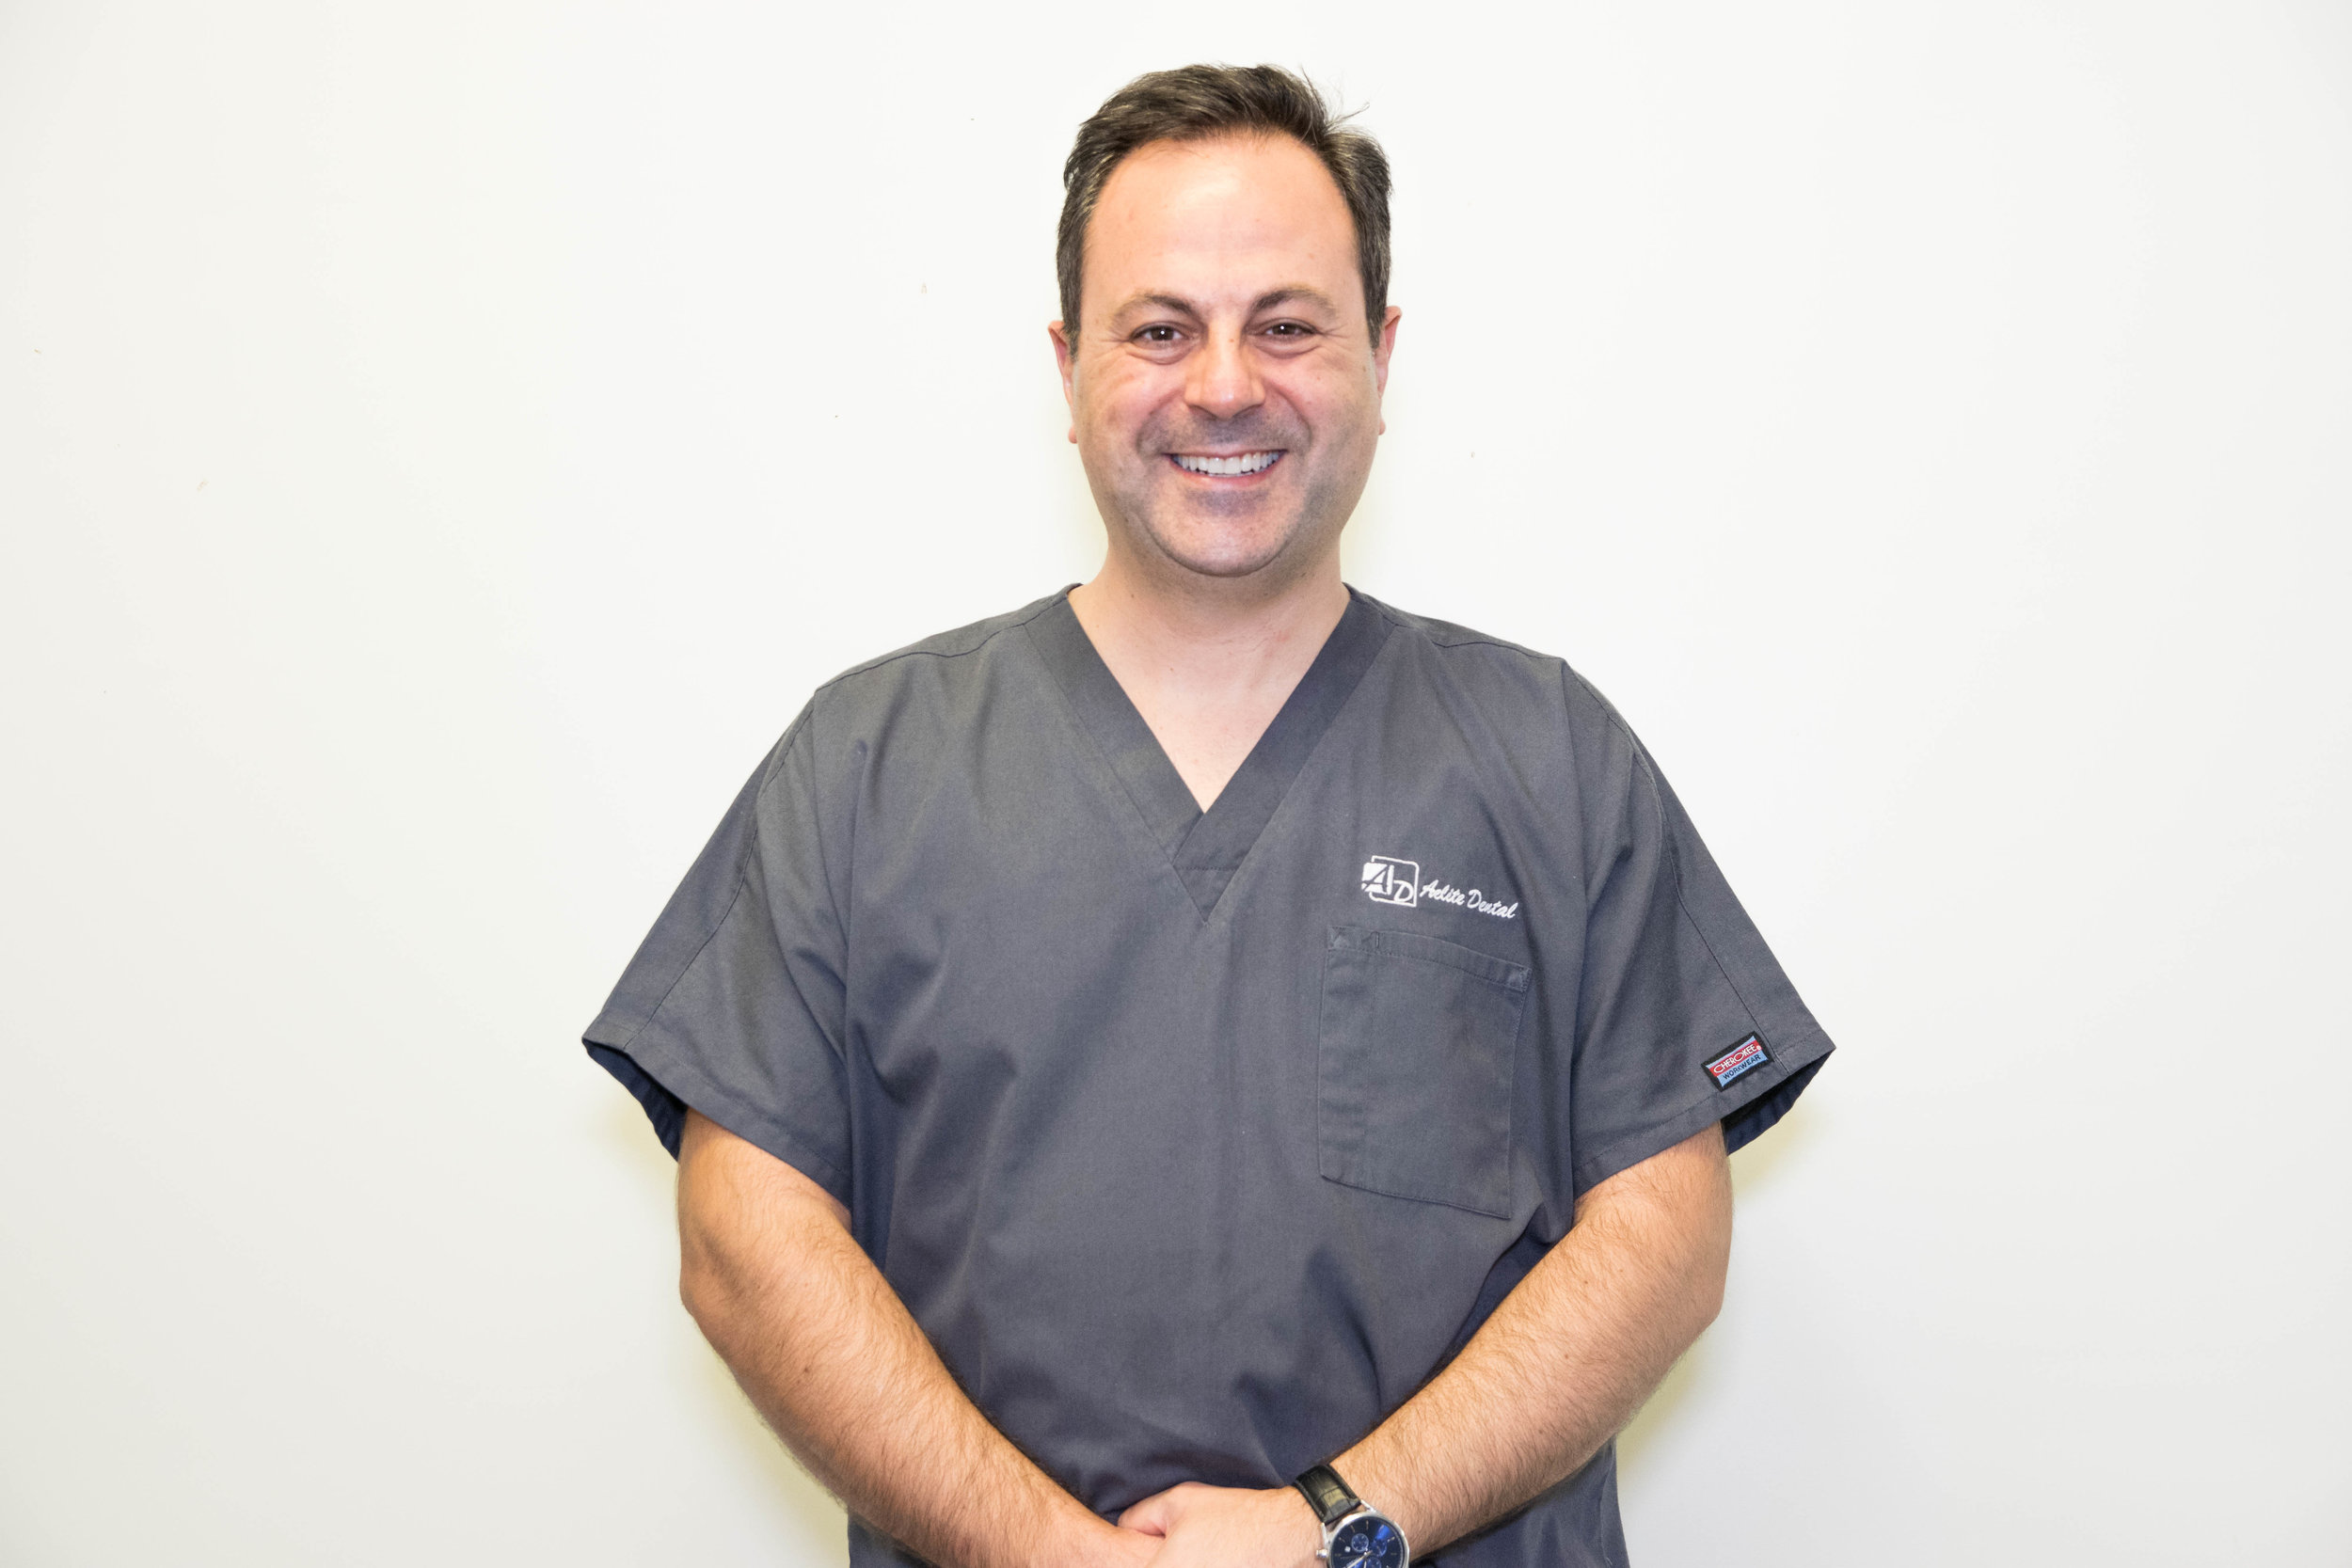 DR Paul murr - Principal dentist     Qualifications and further studies  Graduated from Sydney University in 1992, since then went on to complete a 2 year POS course in Orthodontics, 1999, also successfully completed the following courses:  -Hands on course in Endodontics and successful restoration of Endodontically treated teeth in june 2000 with Dr. S. Cohen a writer of many textbooks and literature.  -Several Nobel Biocare implant seminars in 2006  -Hands on minor oral surgery course in 2006  -Prosthodontist Master series, the full mouth rehabilitation in July 2010  -MDI Mini Dental Implants in July 2011  -Implant placement course at Nobel Biocare in March 2012  -Member of the Australian Dental Association  I work with a very vibrant team, which contribute to make an impact on people's lives through achieving great smiles and better lifestyles. I use the latest technology for better treatment and convenience for our patients. We have currently expanded to a 3 surgery room, which looks out to a courtyard with succulent plants, which provides a comfortable environment for our patients. I play a contributing role in raising my 3 boys, supporting them with their studies and sports, whether it is soccer, taekwondo or swimming. I enjoy skiing trips with my family, especially now my eldest son has followed in my footsteps and started doing blue runs. I am also a St George Dragons supporter and thoroughly enjoy our family outings to their games.